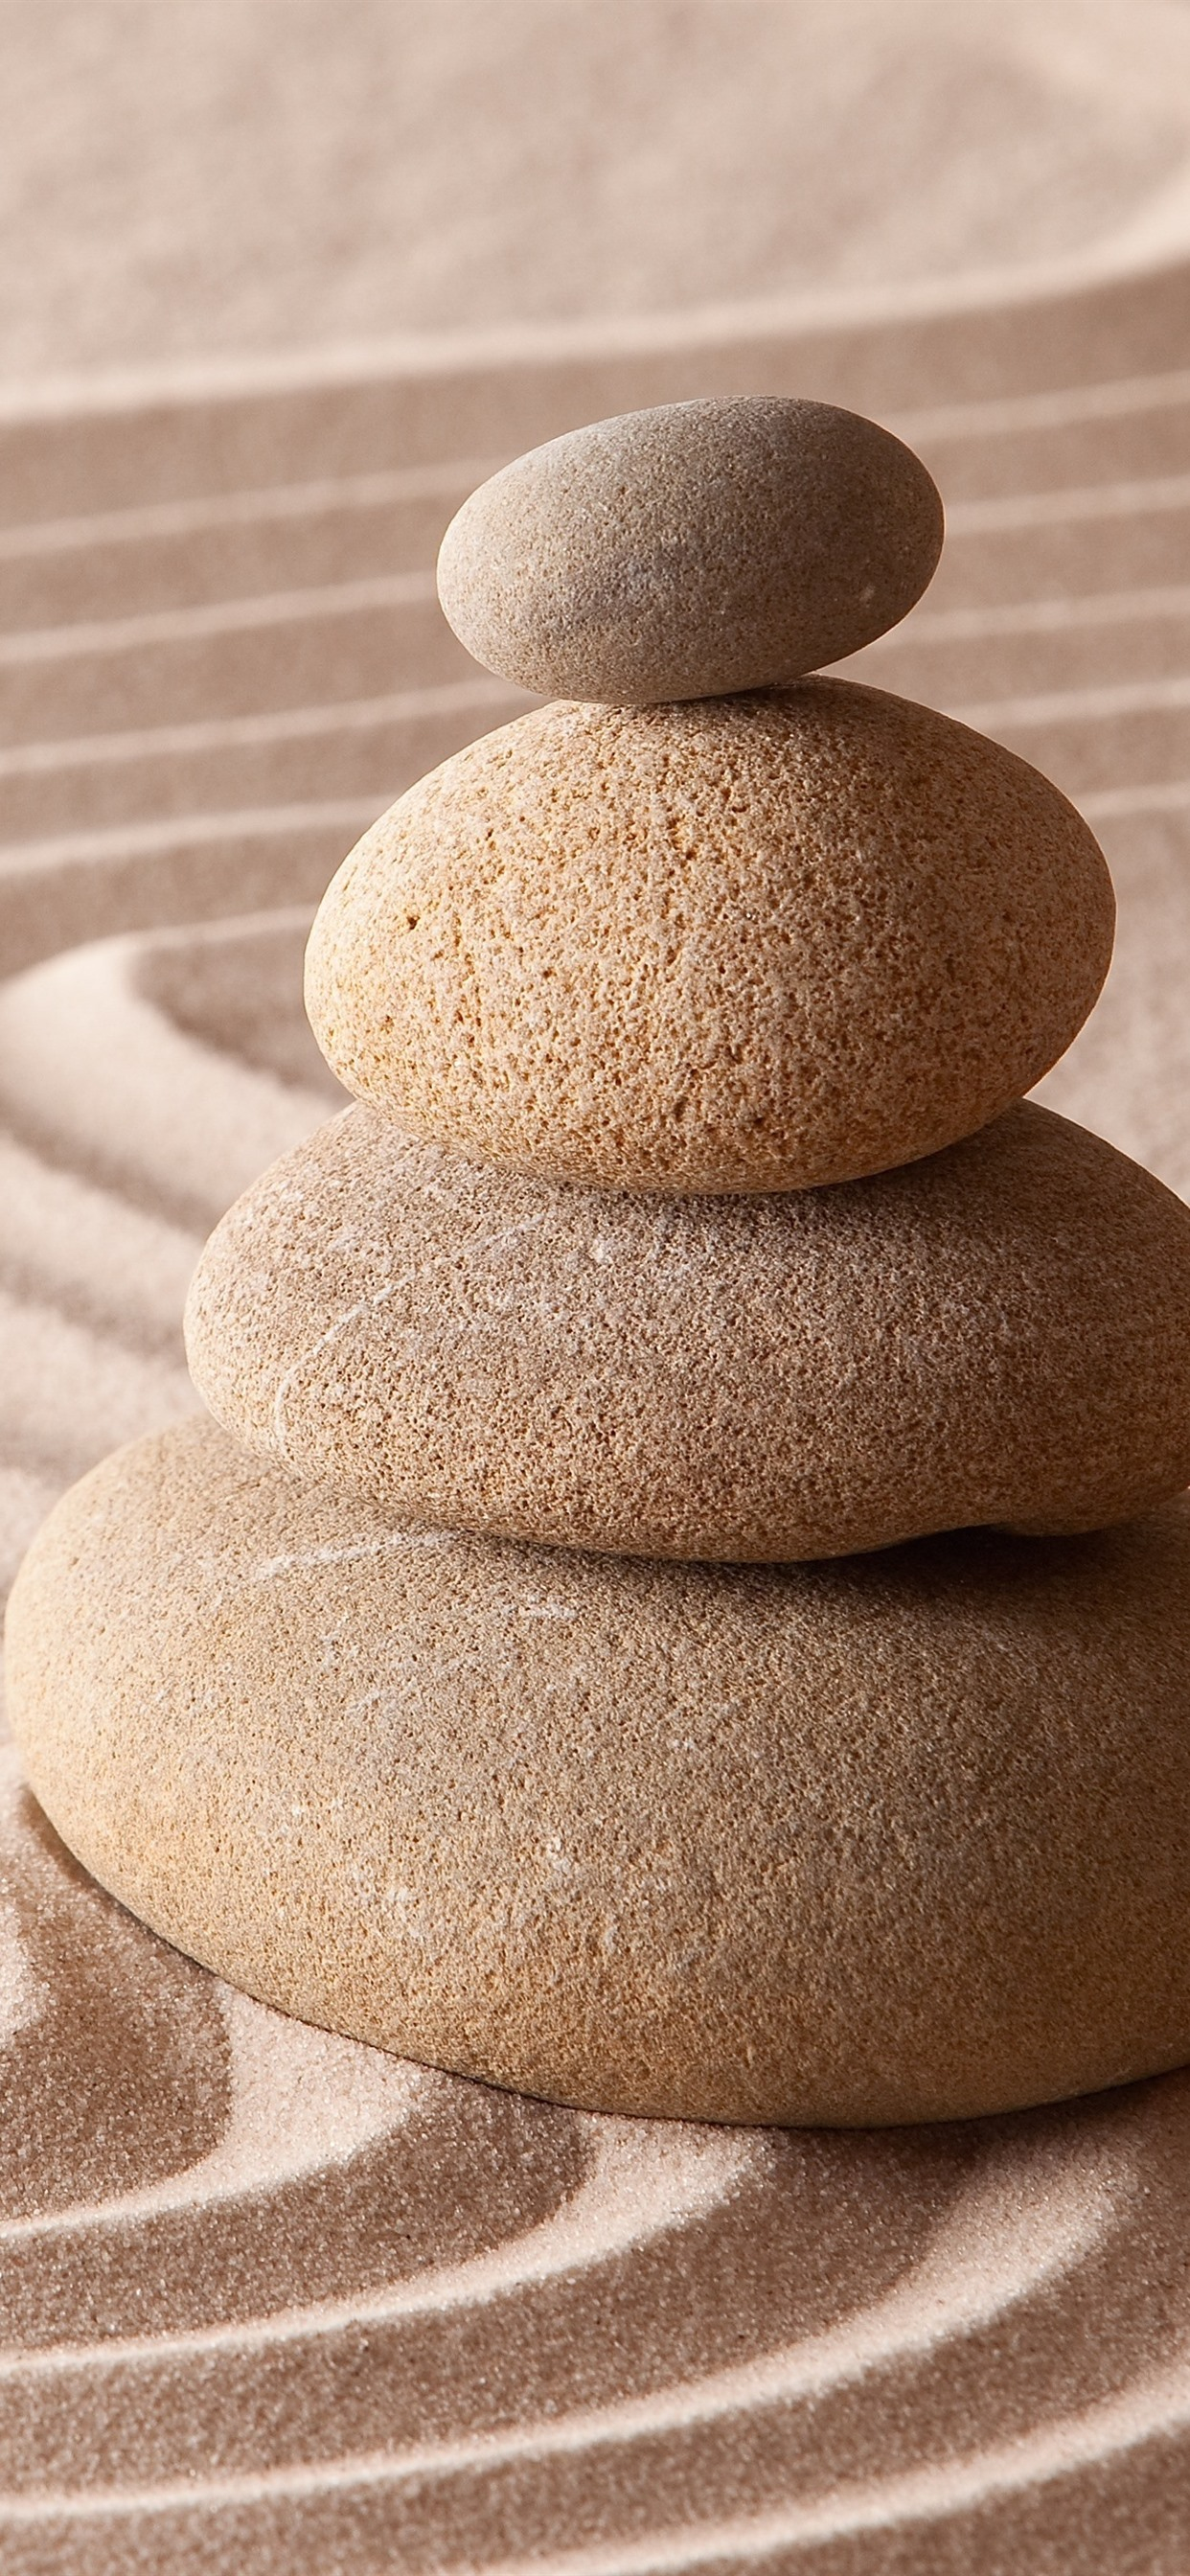 Sand Stones Still Life 1242x2688 Iphone Xs Max Wallpaper